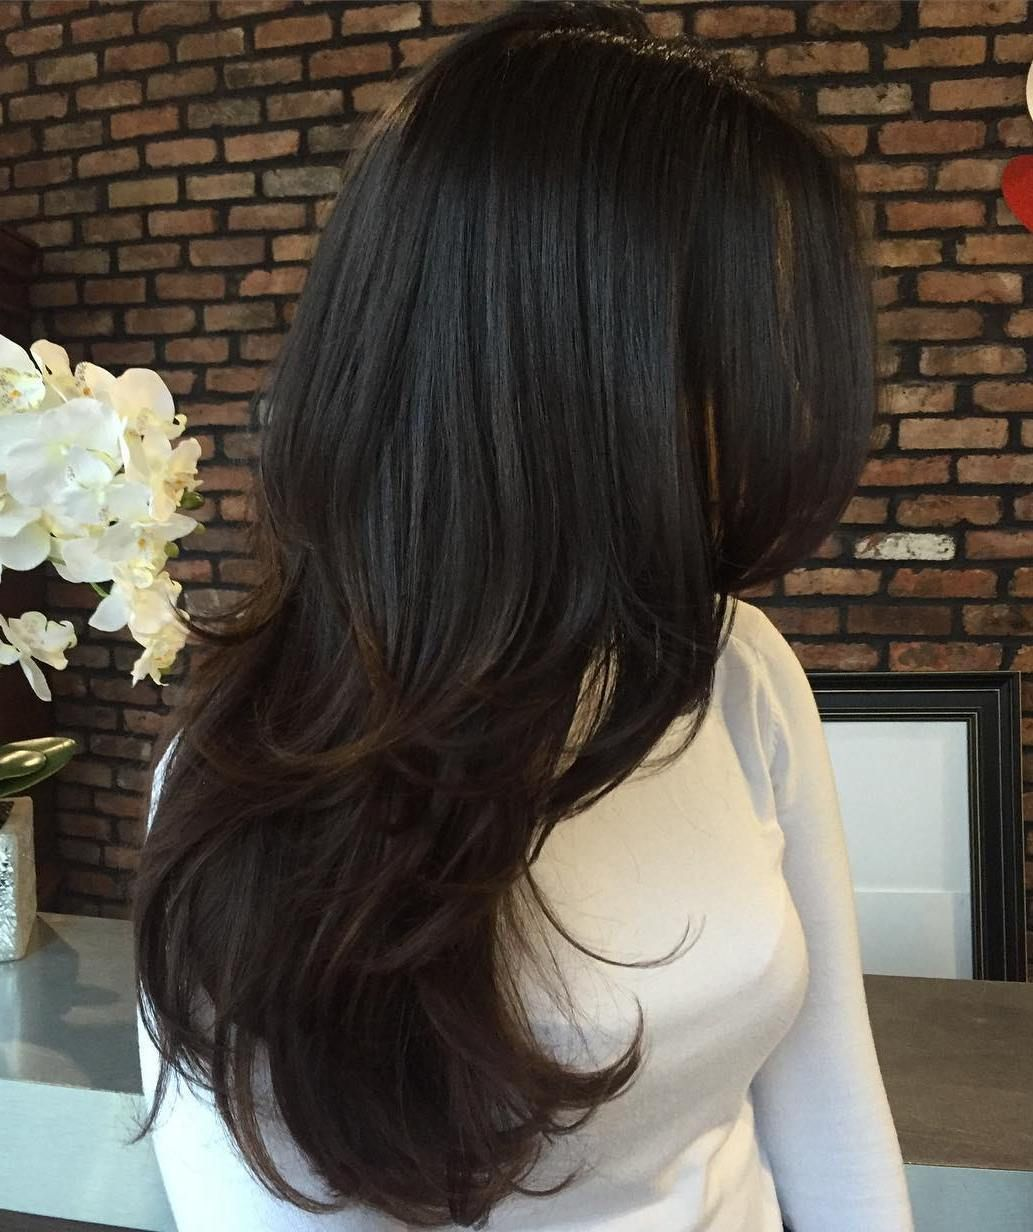 lady long hair style 80 layered hairstyles and cuts for hair hair 3149 | e0e0e98c91ae3c6c7ab43f9eb0d1f440